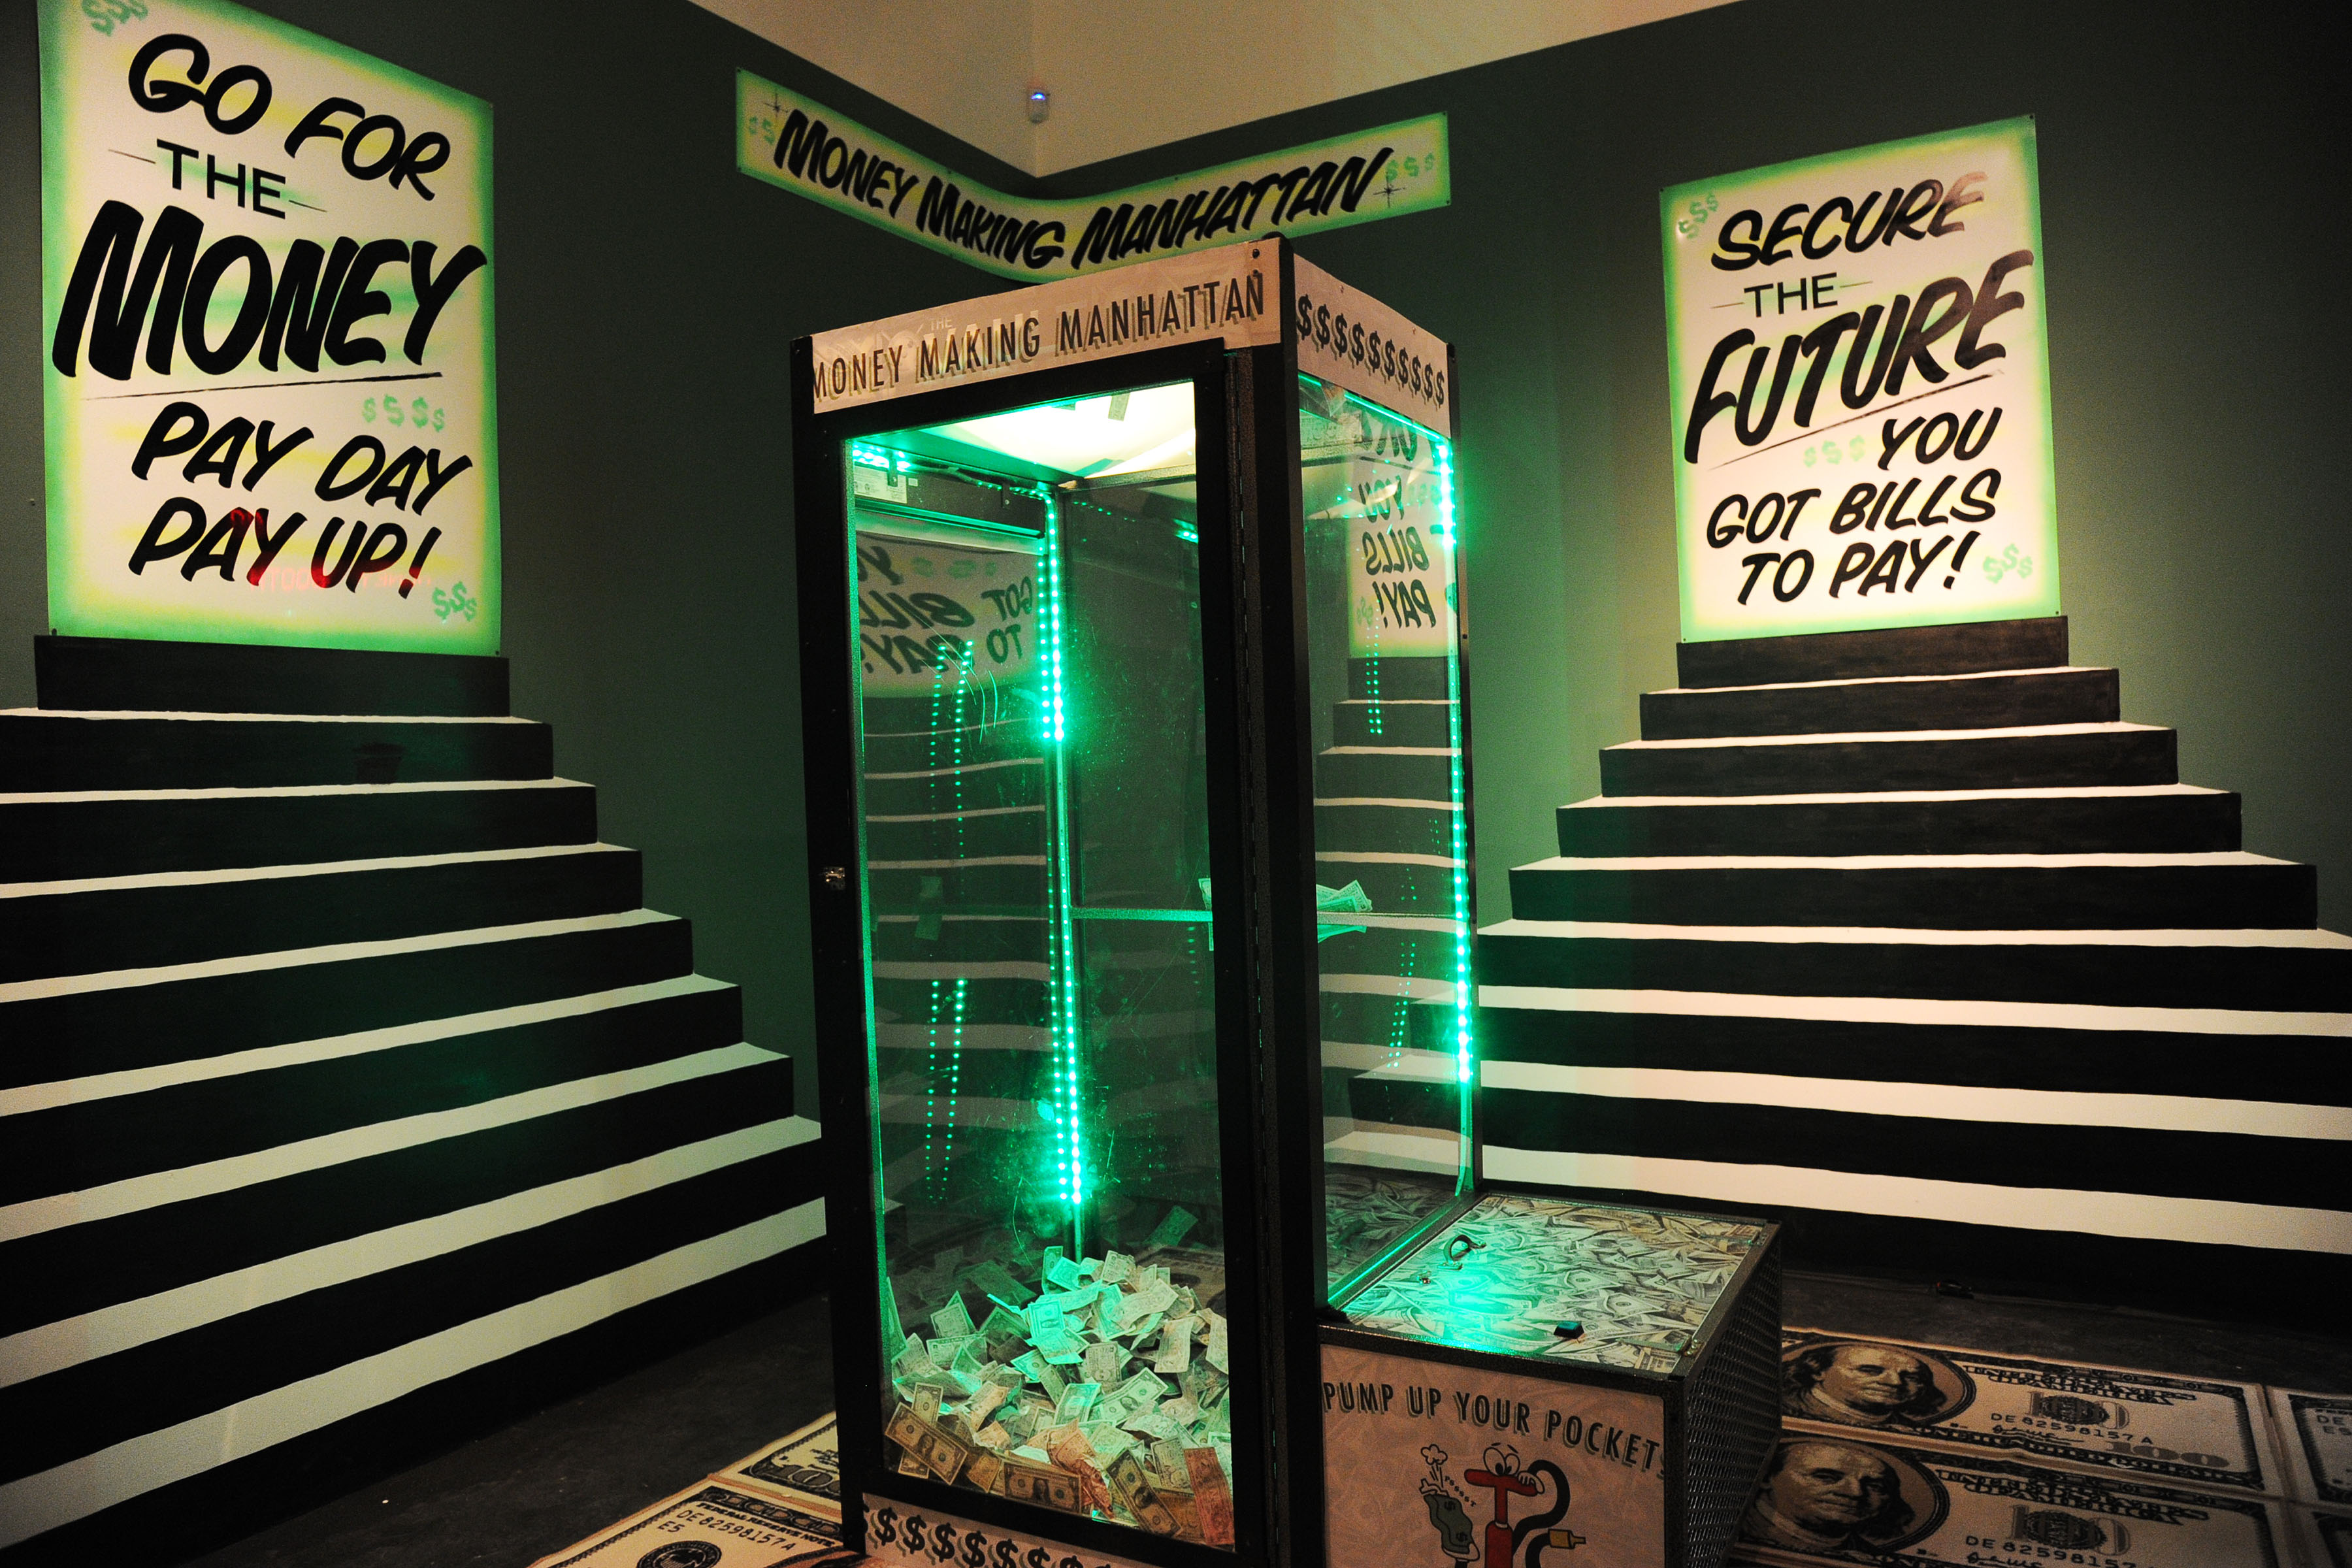 The money booth. (Photo: Patrick McMullan)